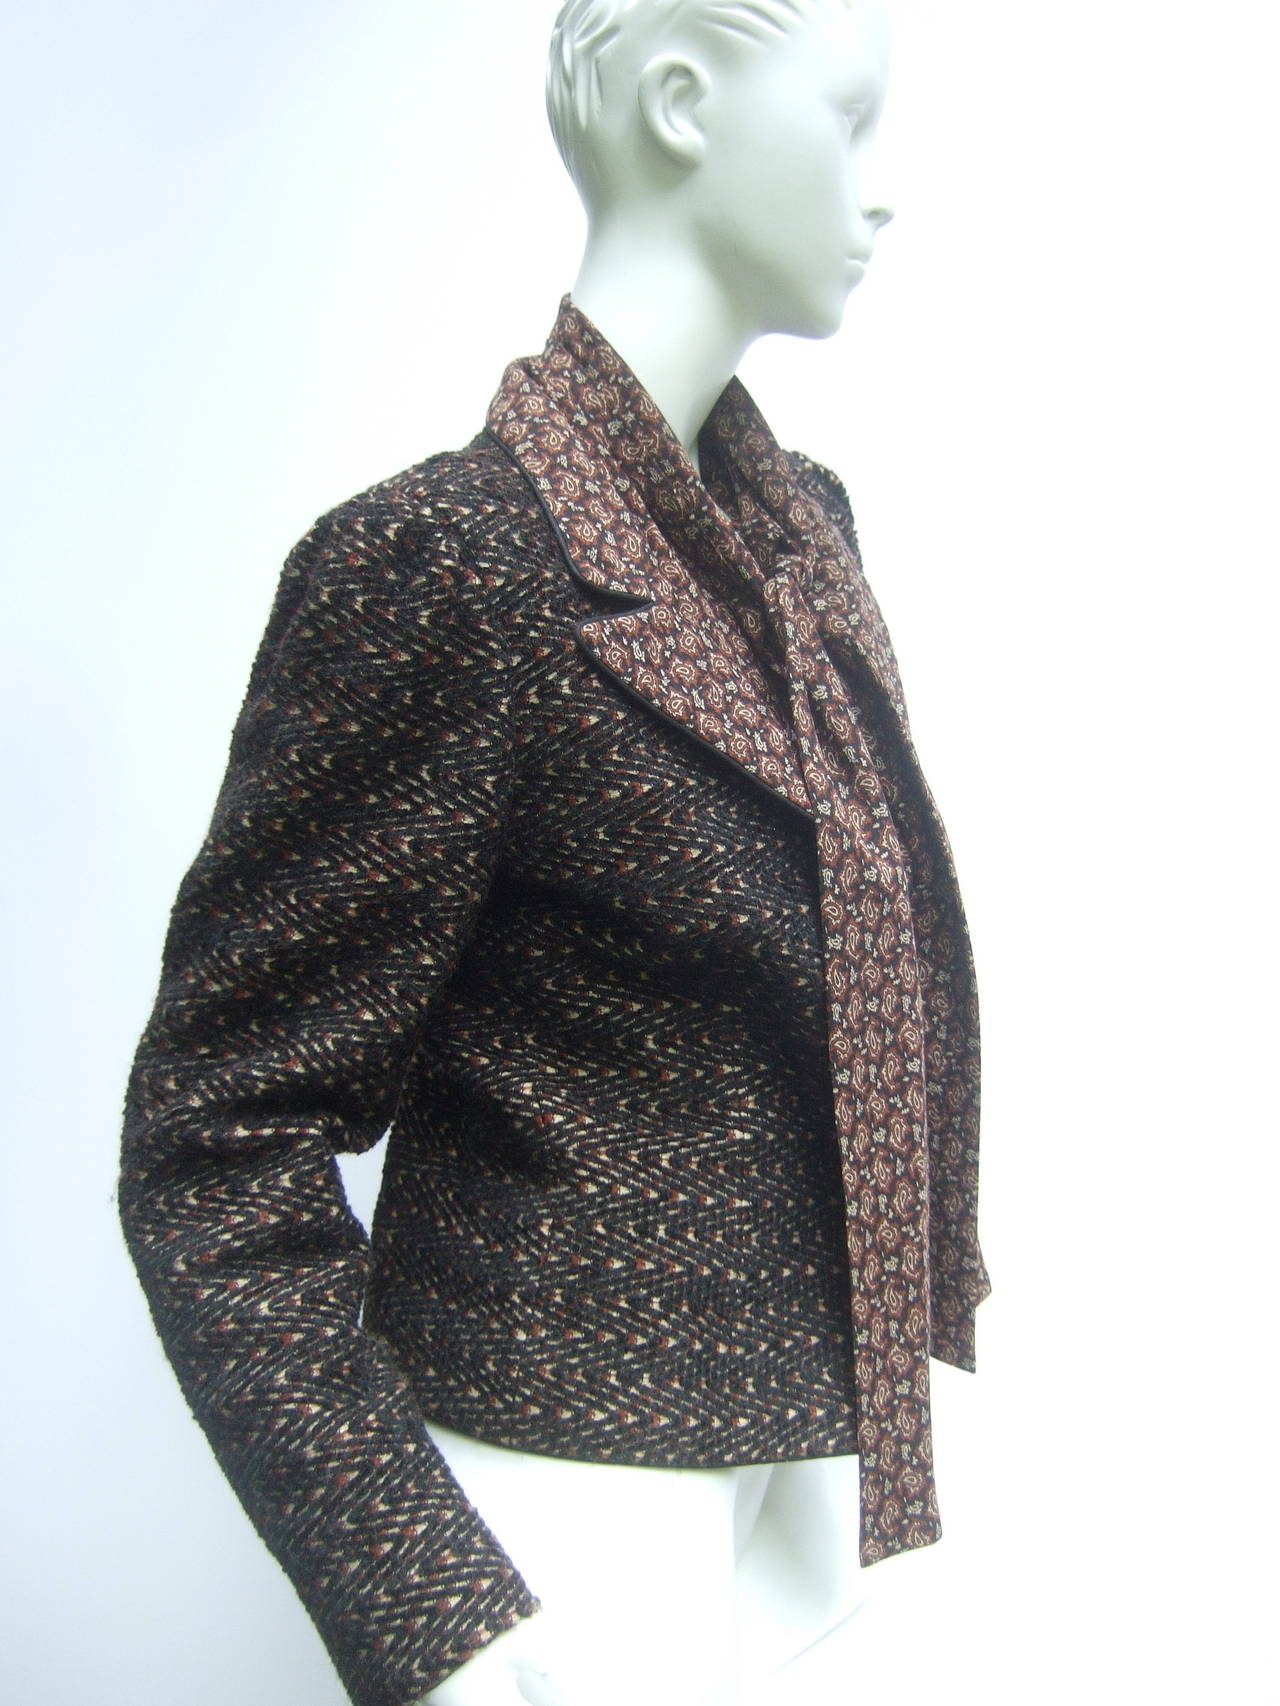 Lanvin Couture Paris Wool Jacket & Paisley Blouse Ensemble c 1980s 6